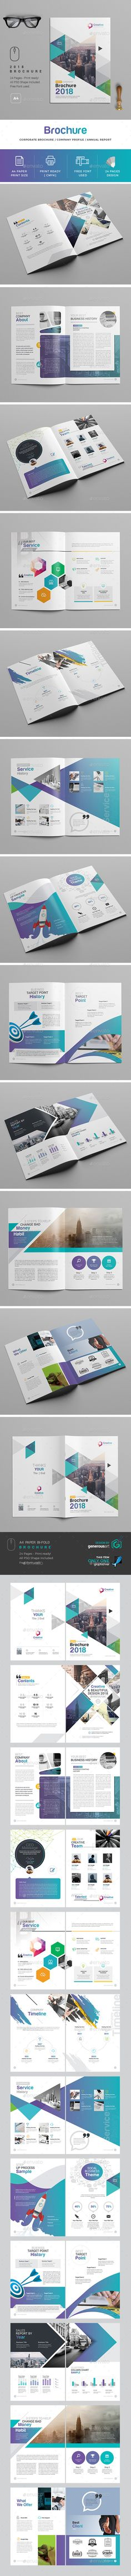 2018 Brochure — Photoshop PSD #case study #startup • Available here ➝ https://graphicriver.net/item/2018-brochure/20844631?ref=pxcr